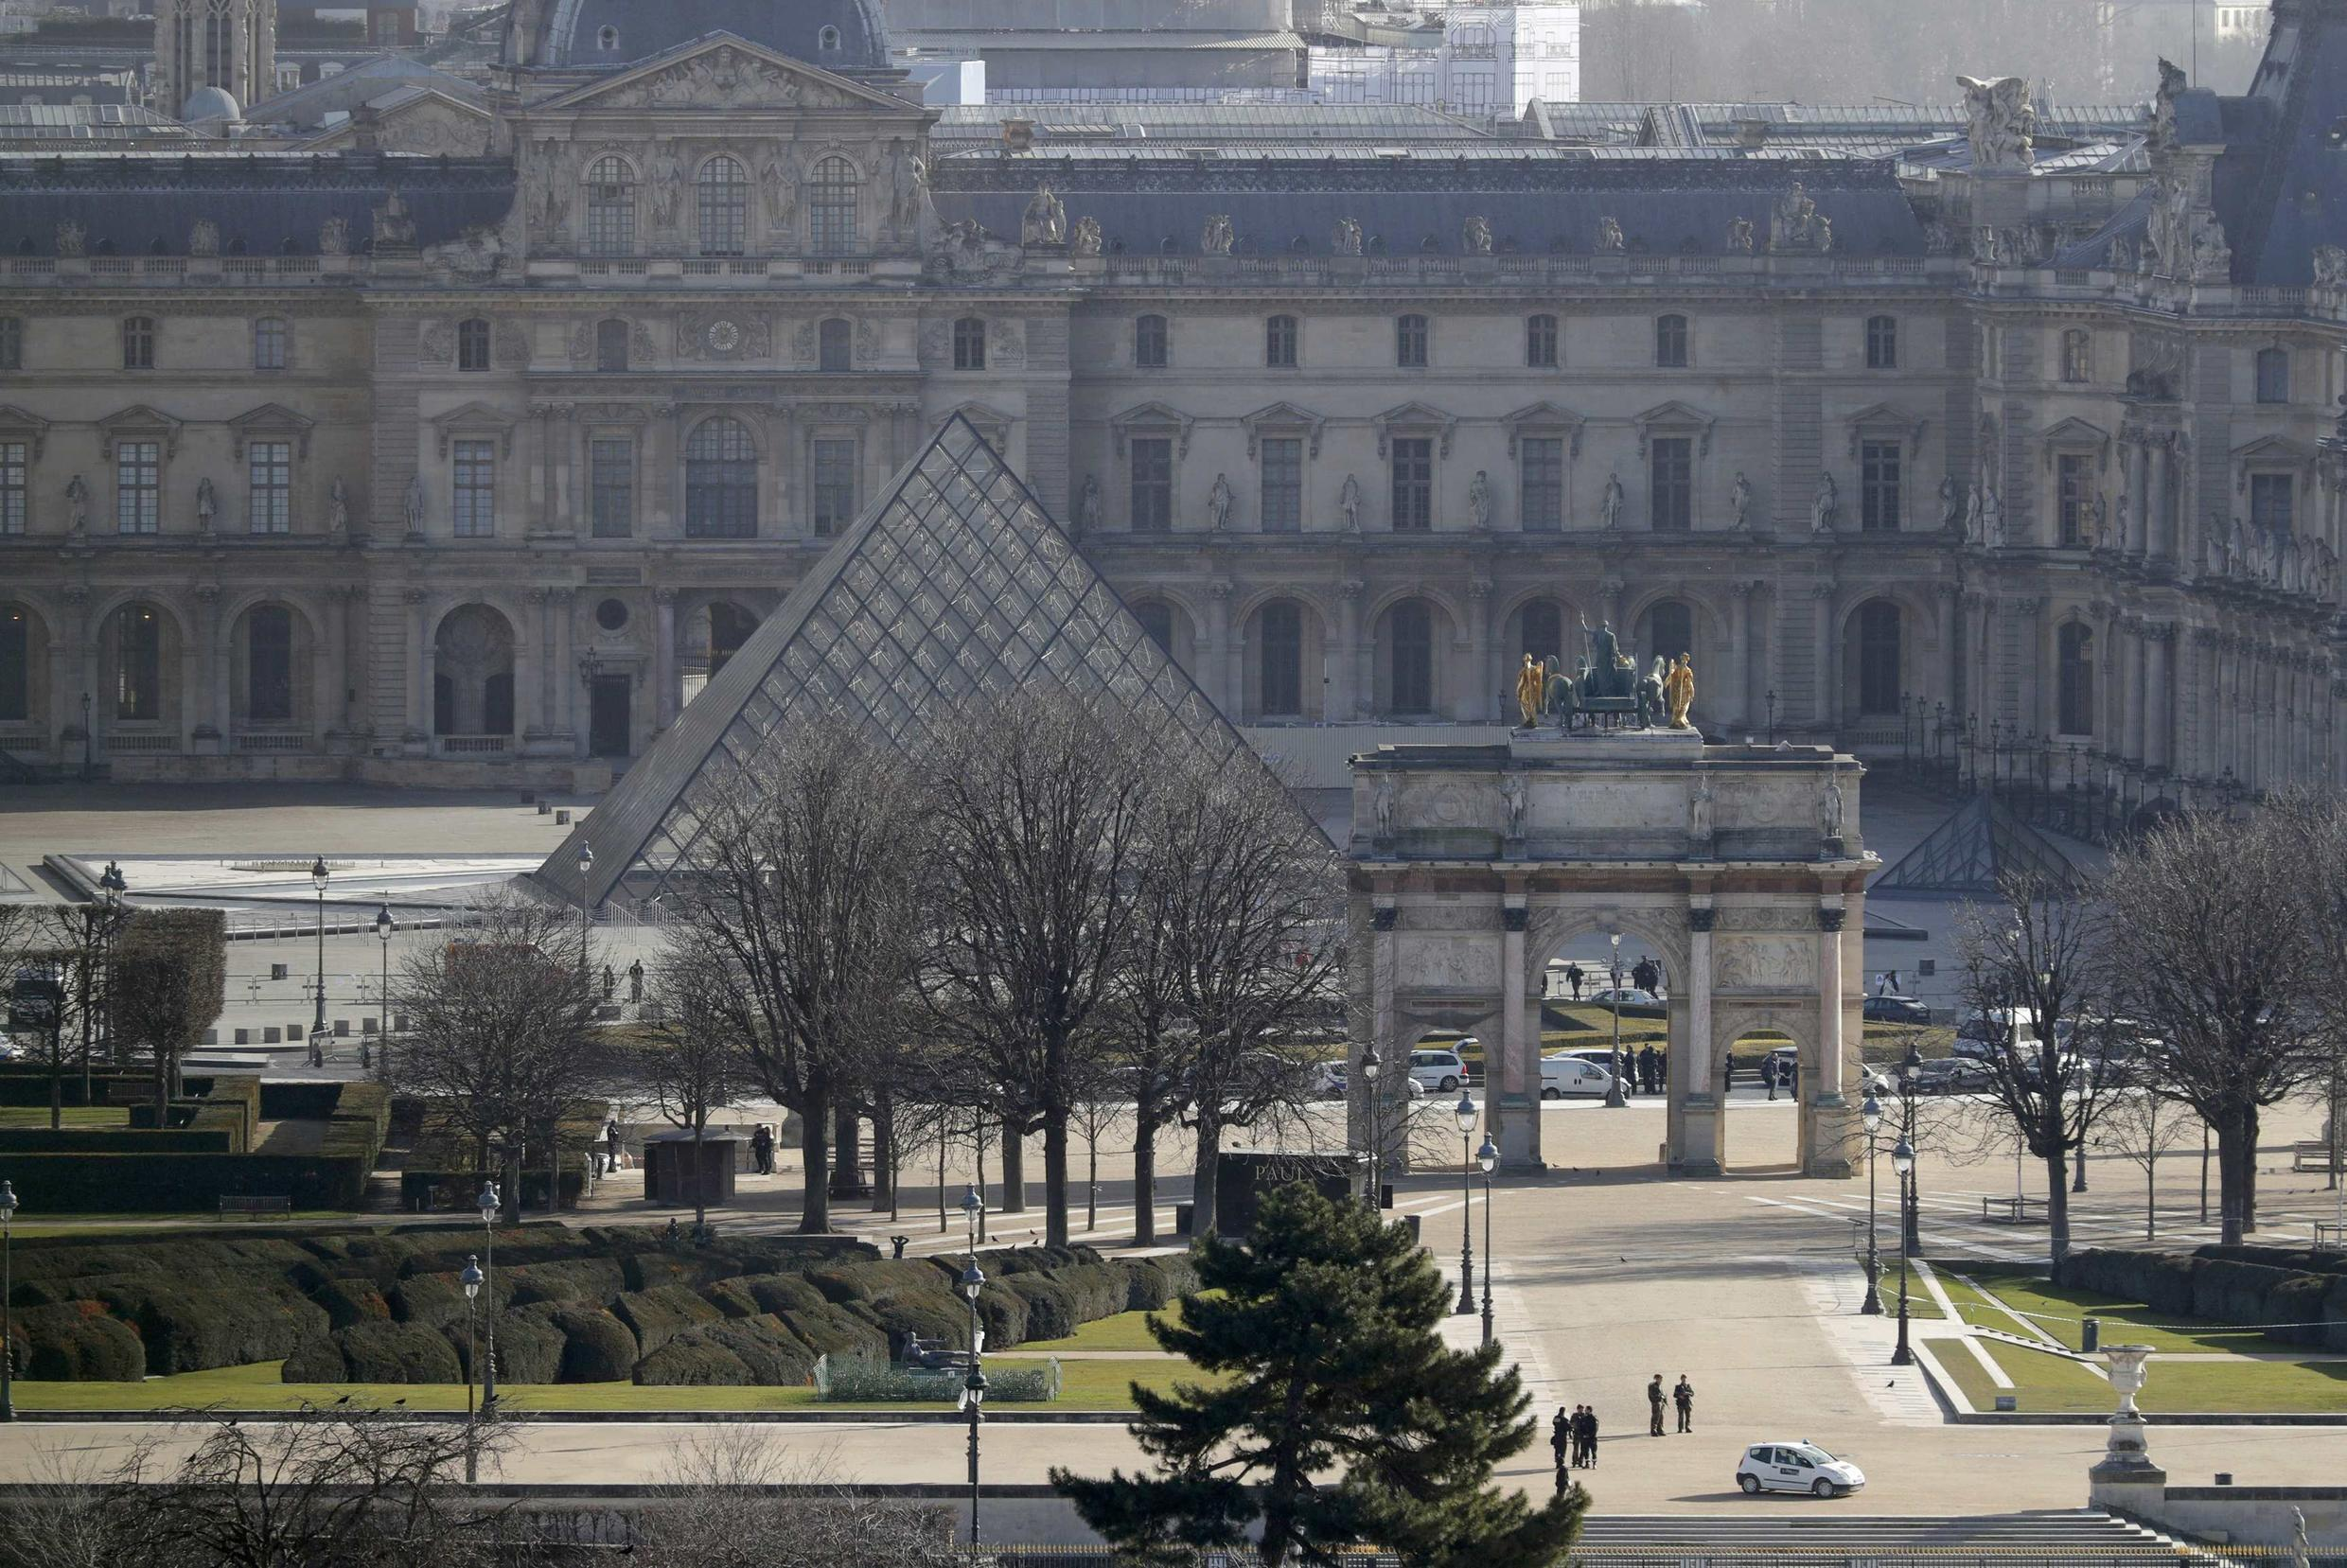 the Carrousel du Louvre and the Louvre Pyramid as French police secure the site in Paris, France, February 3, 2017 after a French soldier shot and wounded a man armed with a machete and carrying two bags on his back as he tried to enter the Louvre museum.